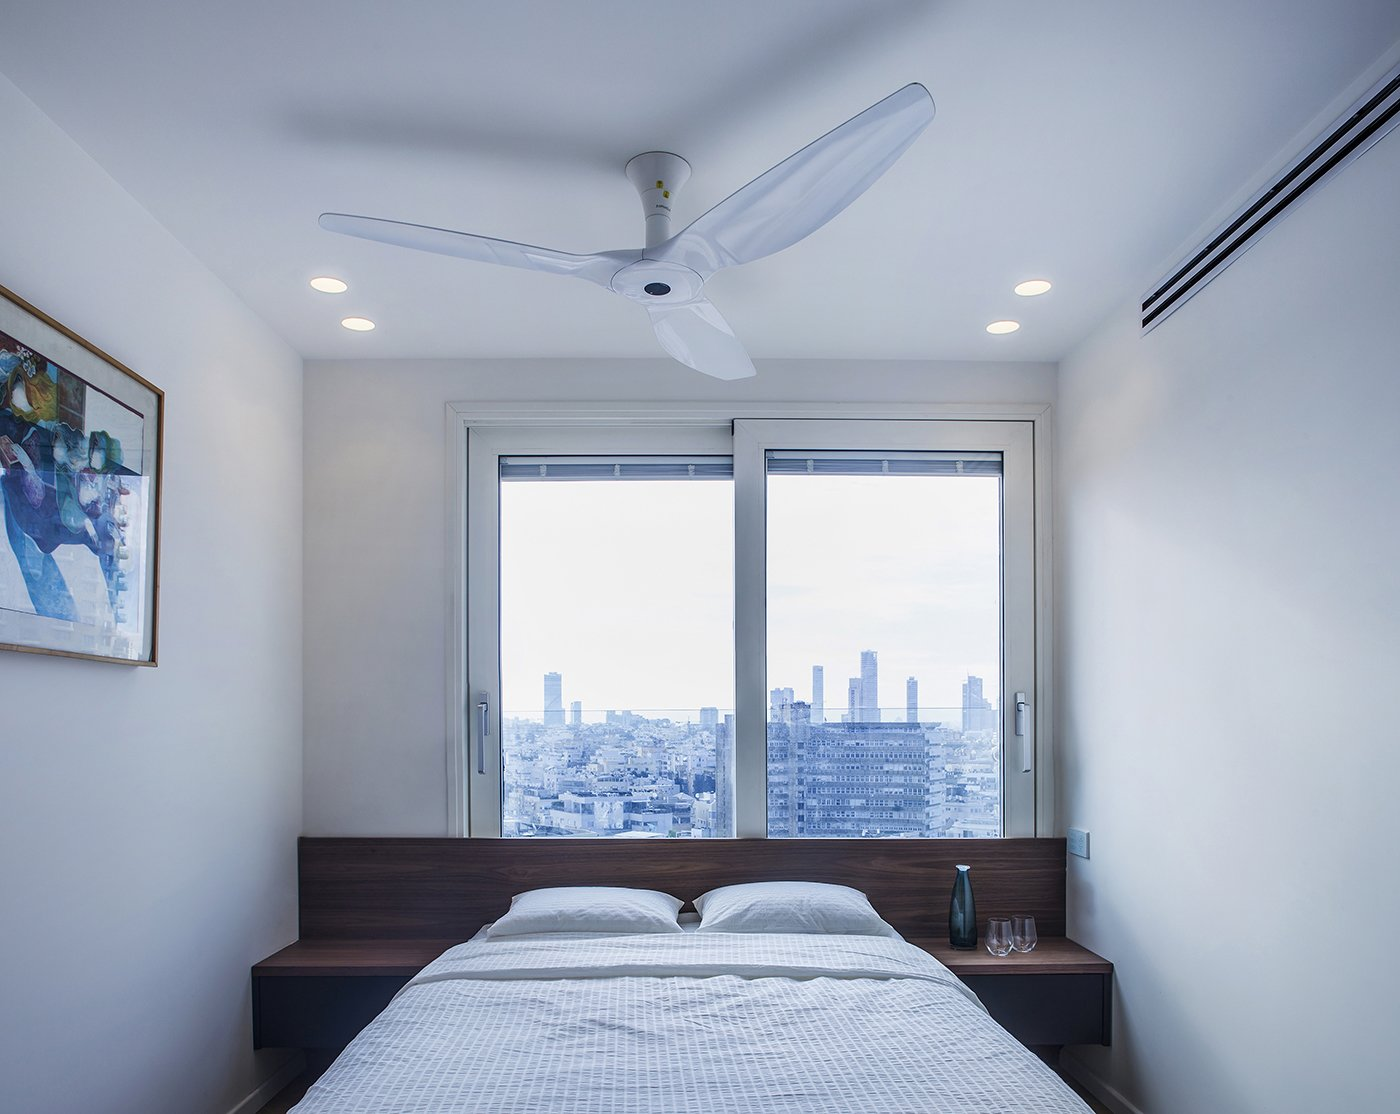 As part of the update, the two bedrooms were expanded, and a number of smart features were added: automated lighting and curtains, along with double glazed windows with an electric shading system.  Bedroom from A Compact, Renovated Apartment in a Tel Aviv Tower